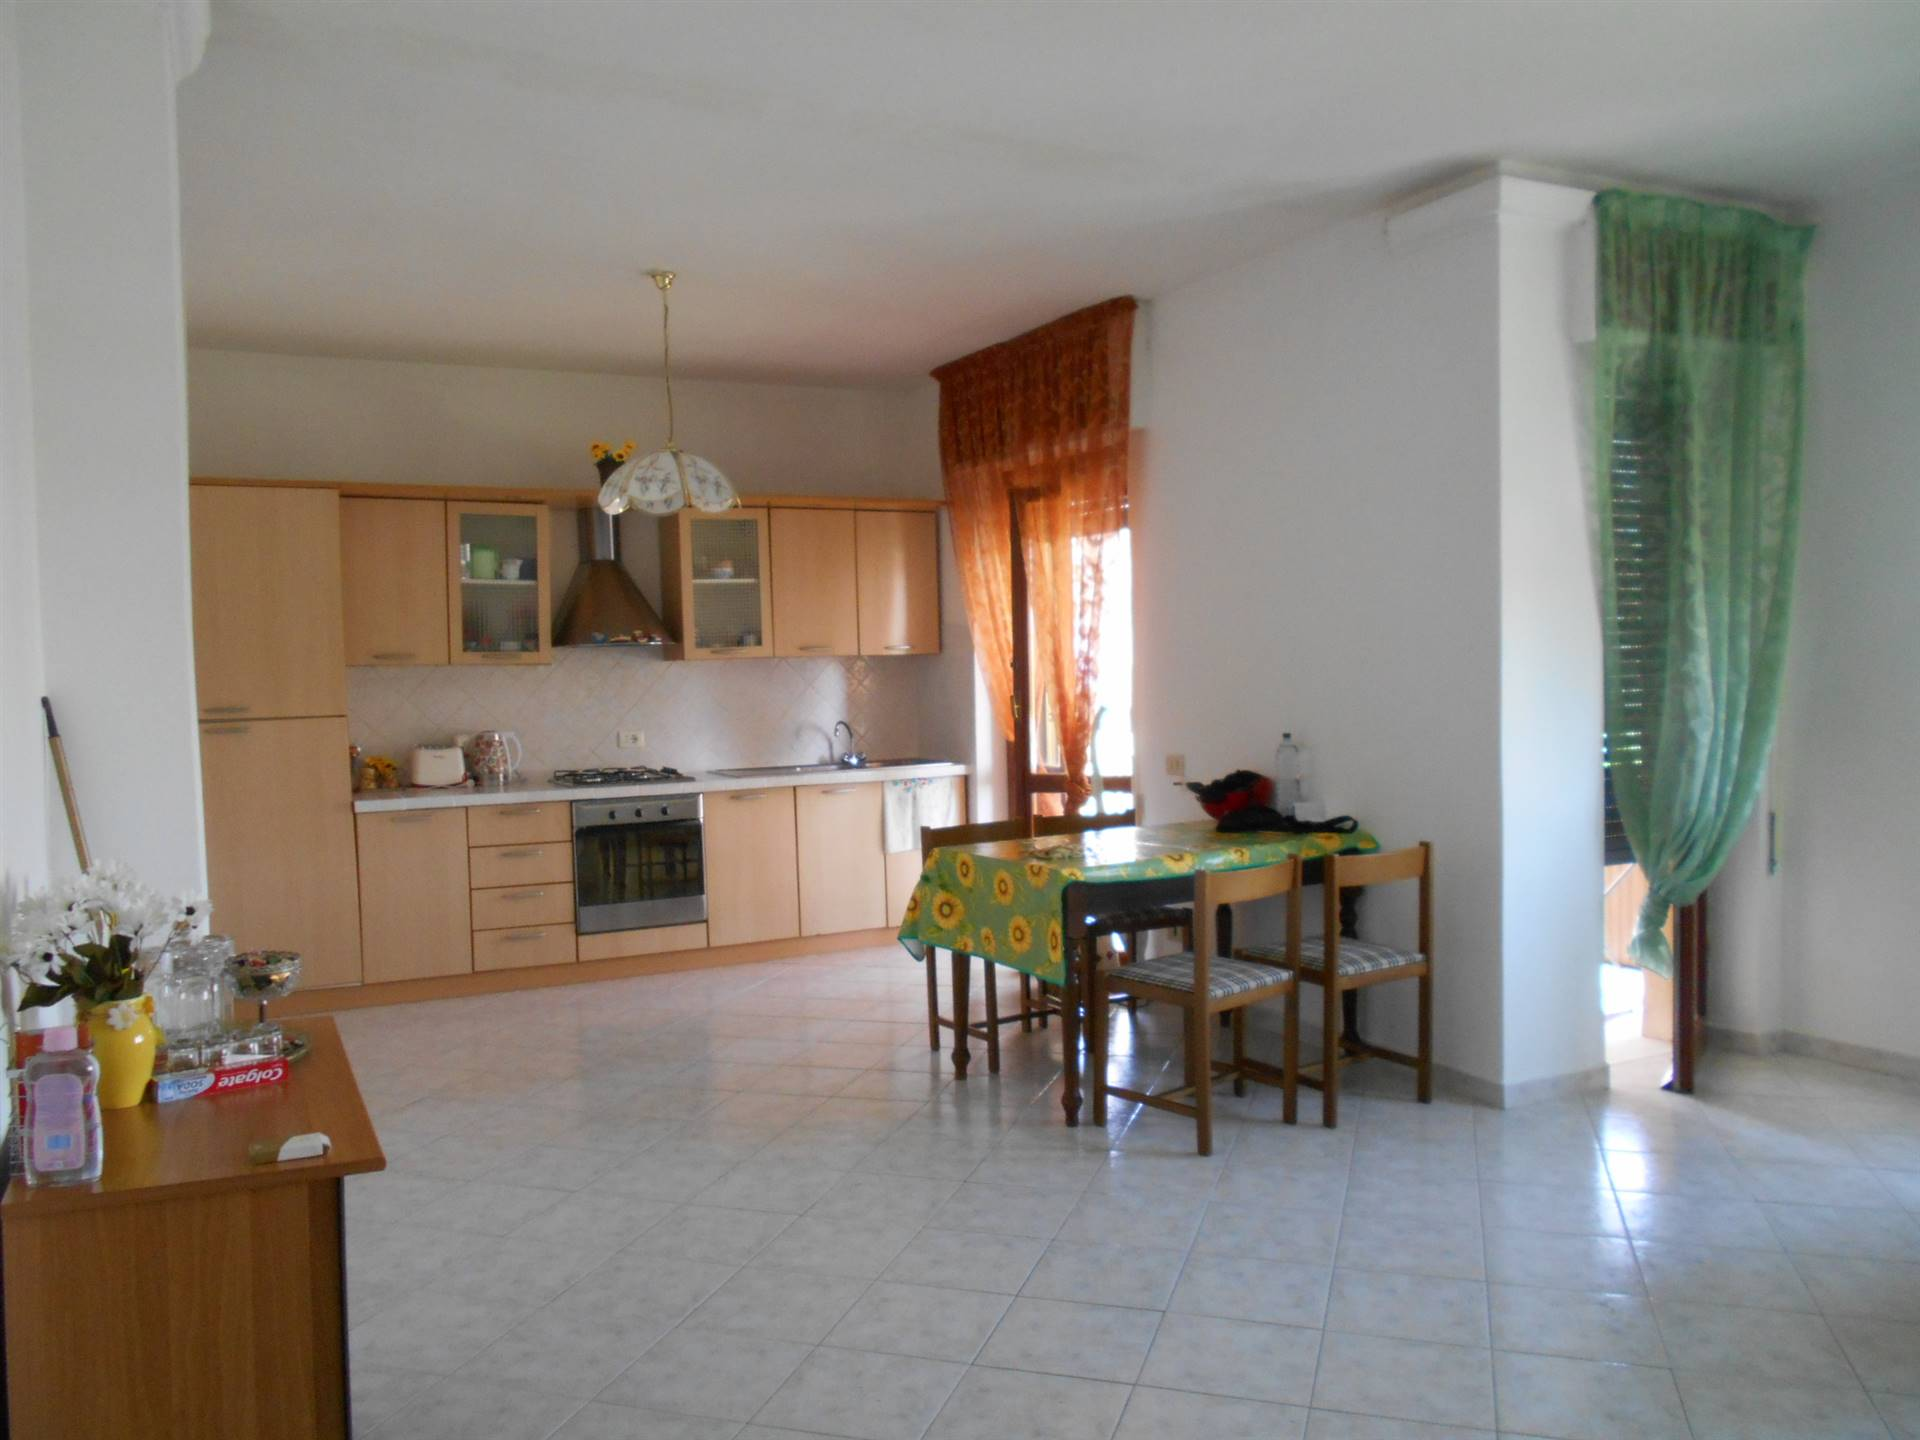 CISTERNA FARO, CIVITAVECCHIA, Apartment for rent of 80 Sq. mt., Good condition, Heating Centralized, Energetic class: G, Epi: 175 kwh/m2 year, placed